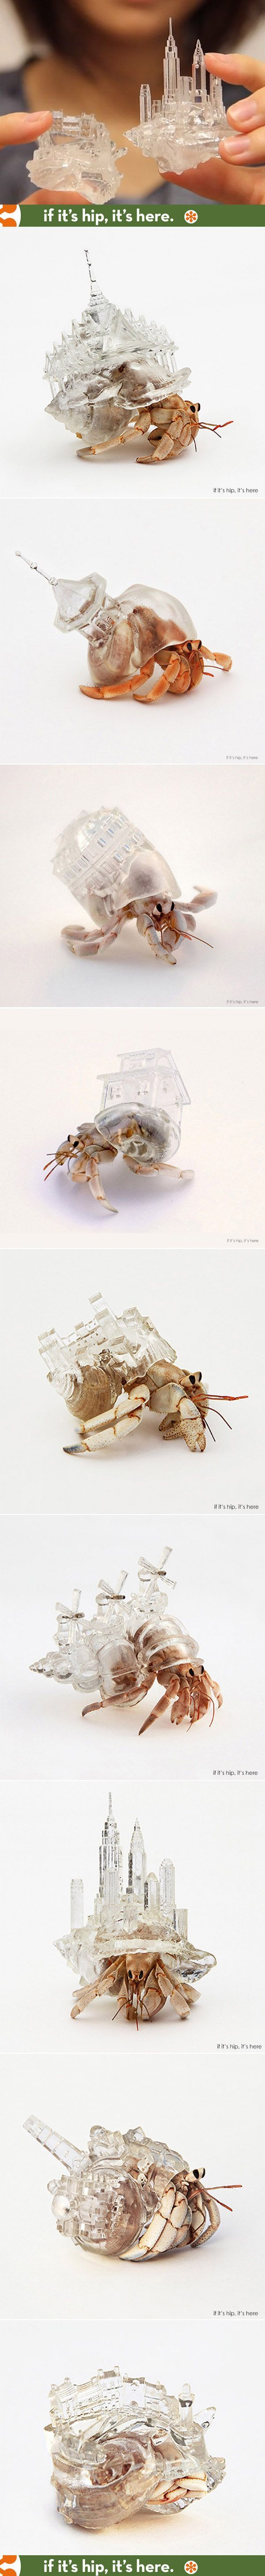 Artist Aki Inomata's 3D-printed acrylic shells for the hermit crab. See the entire project at www.ifitshipitshe... <<< omg tell me you're just joking.... Holy [not so holy word]